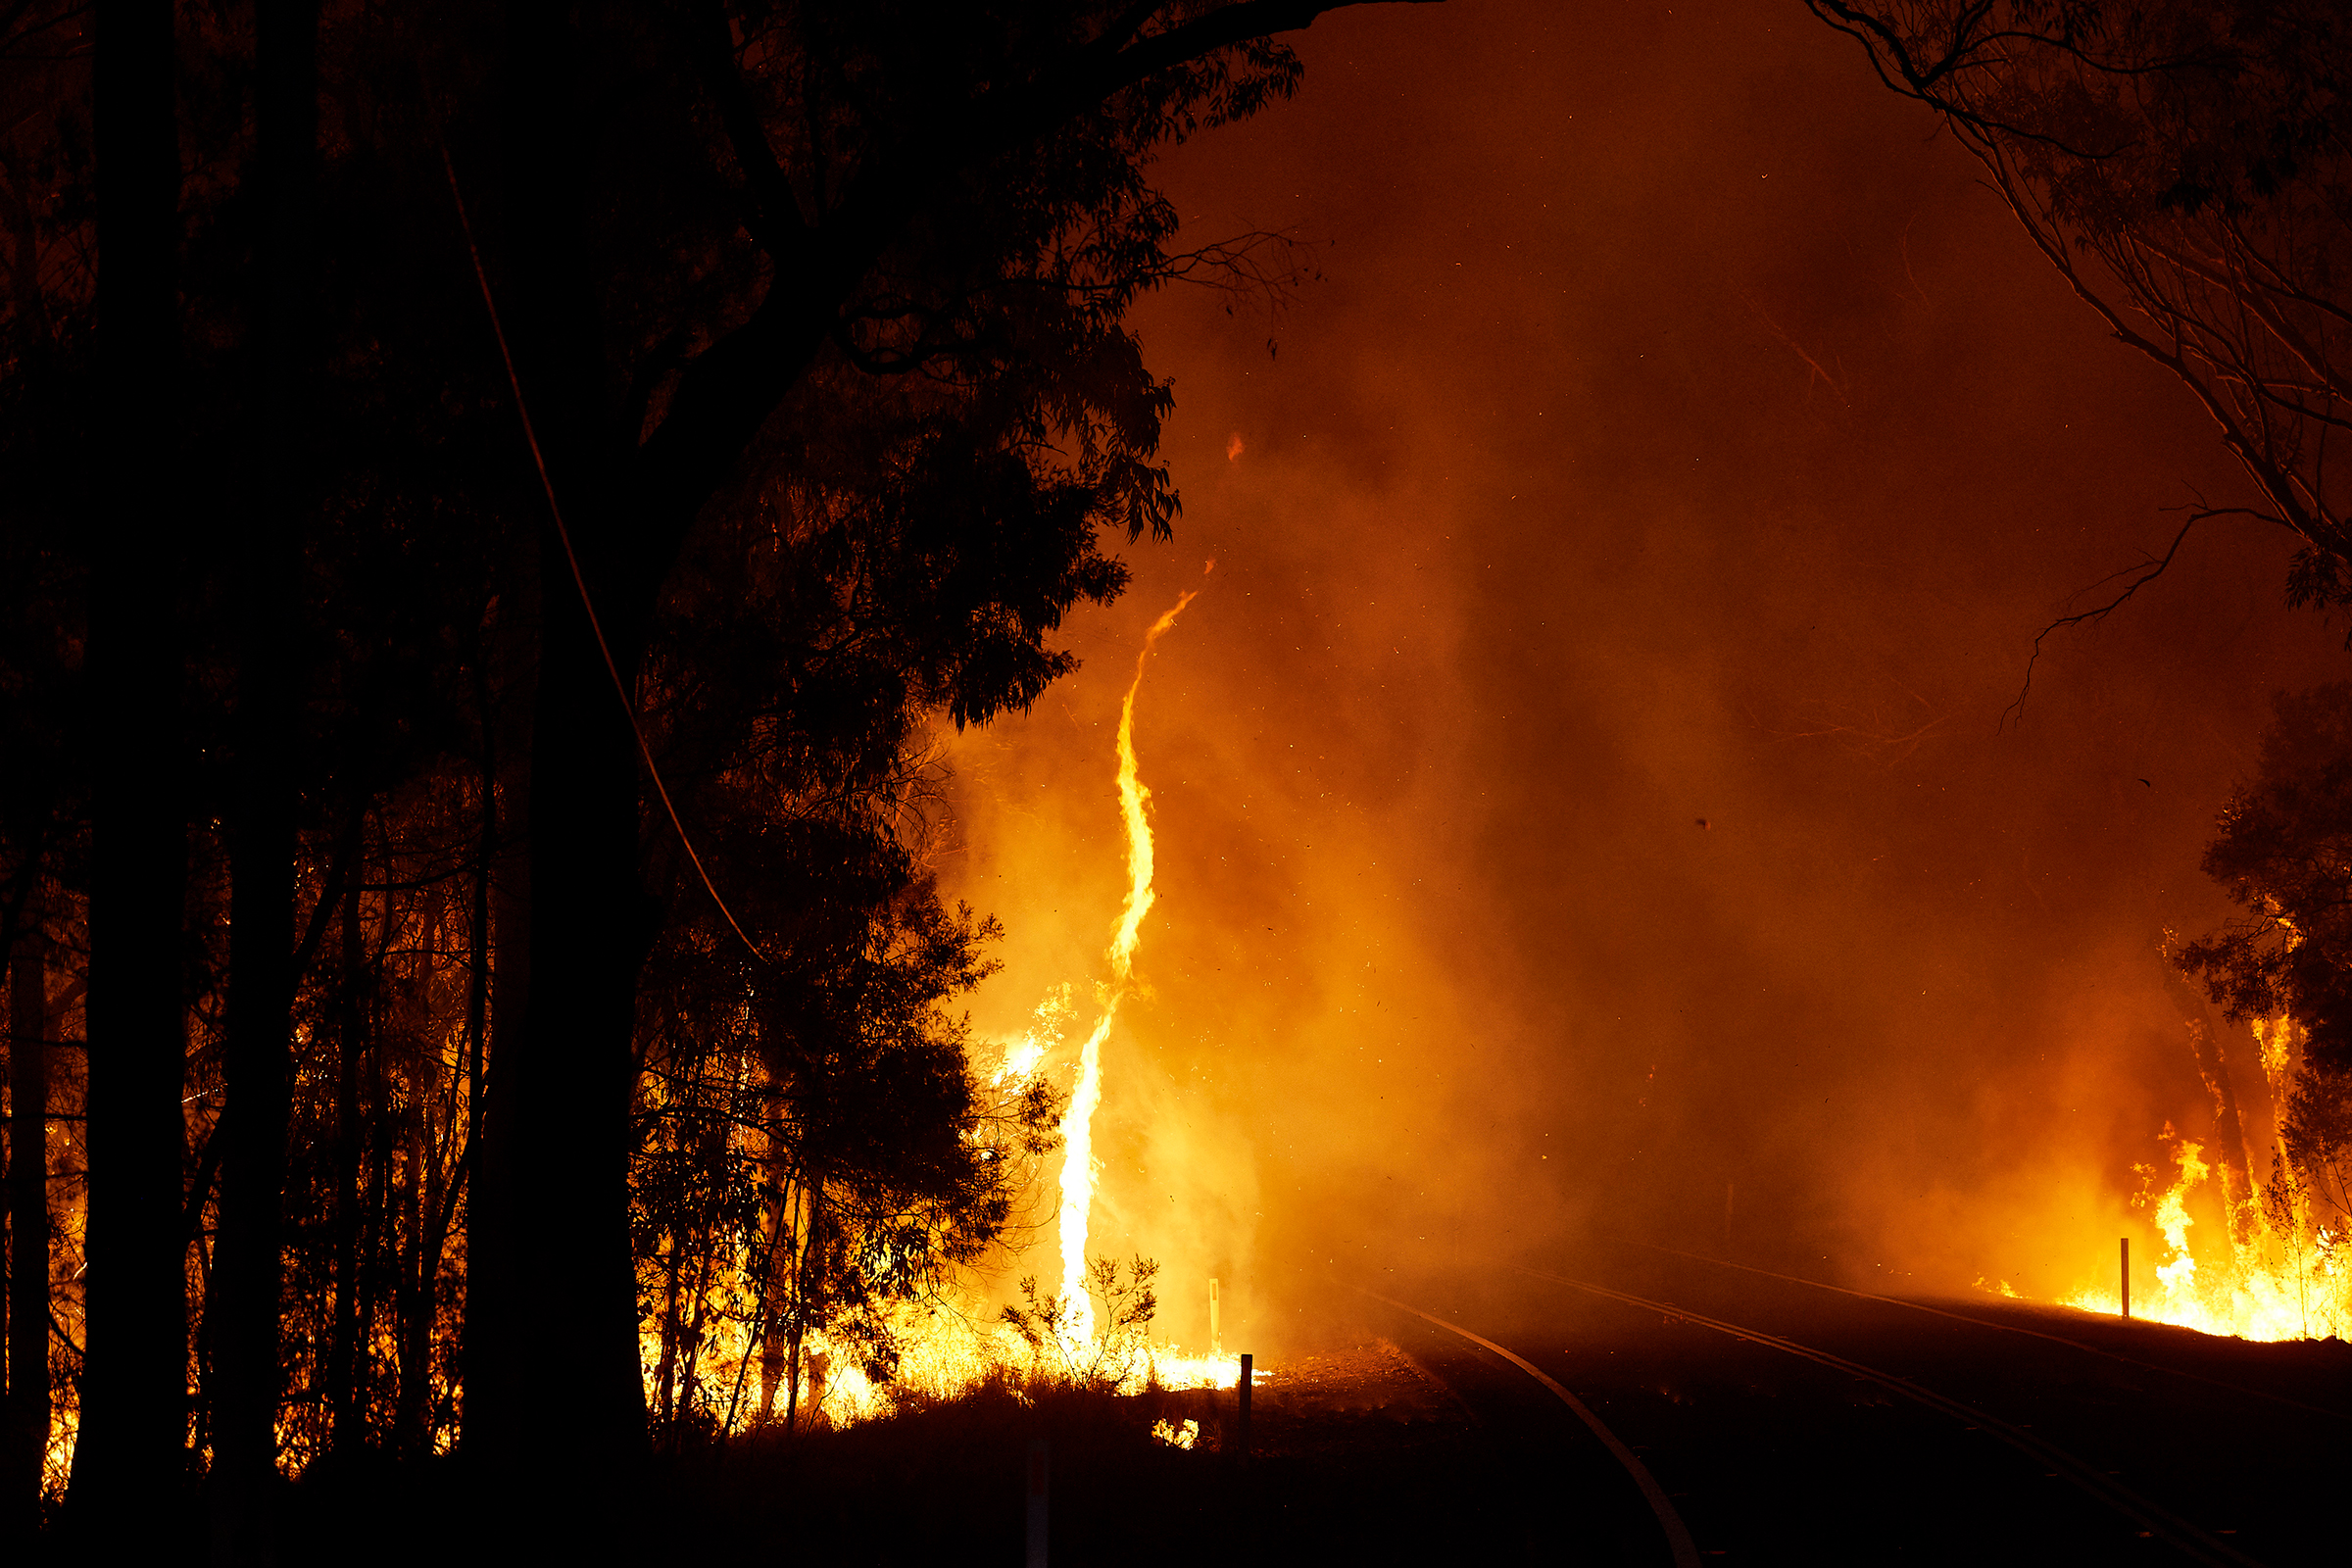 A bushfire along Putty Road in Colo Heights, New South Wales, on Nov. 15, 2019.